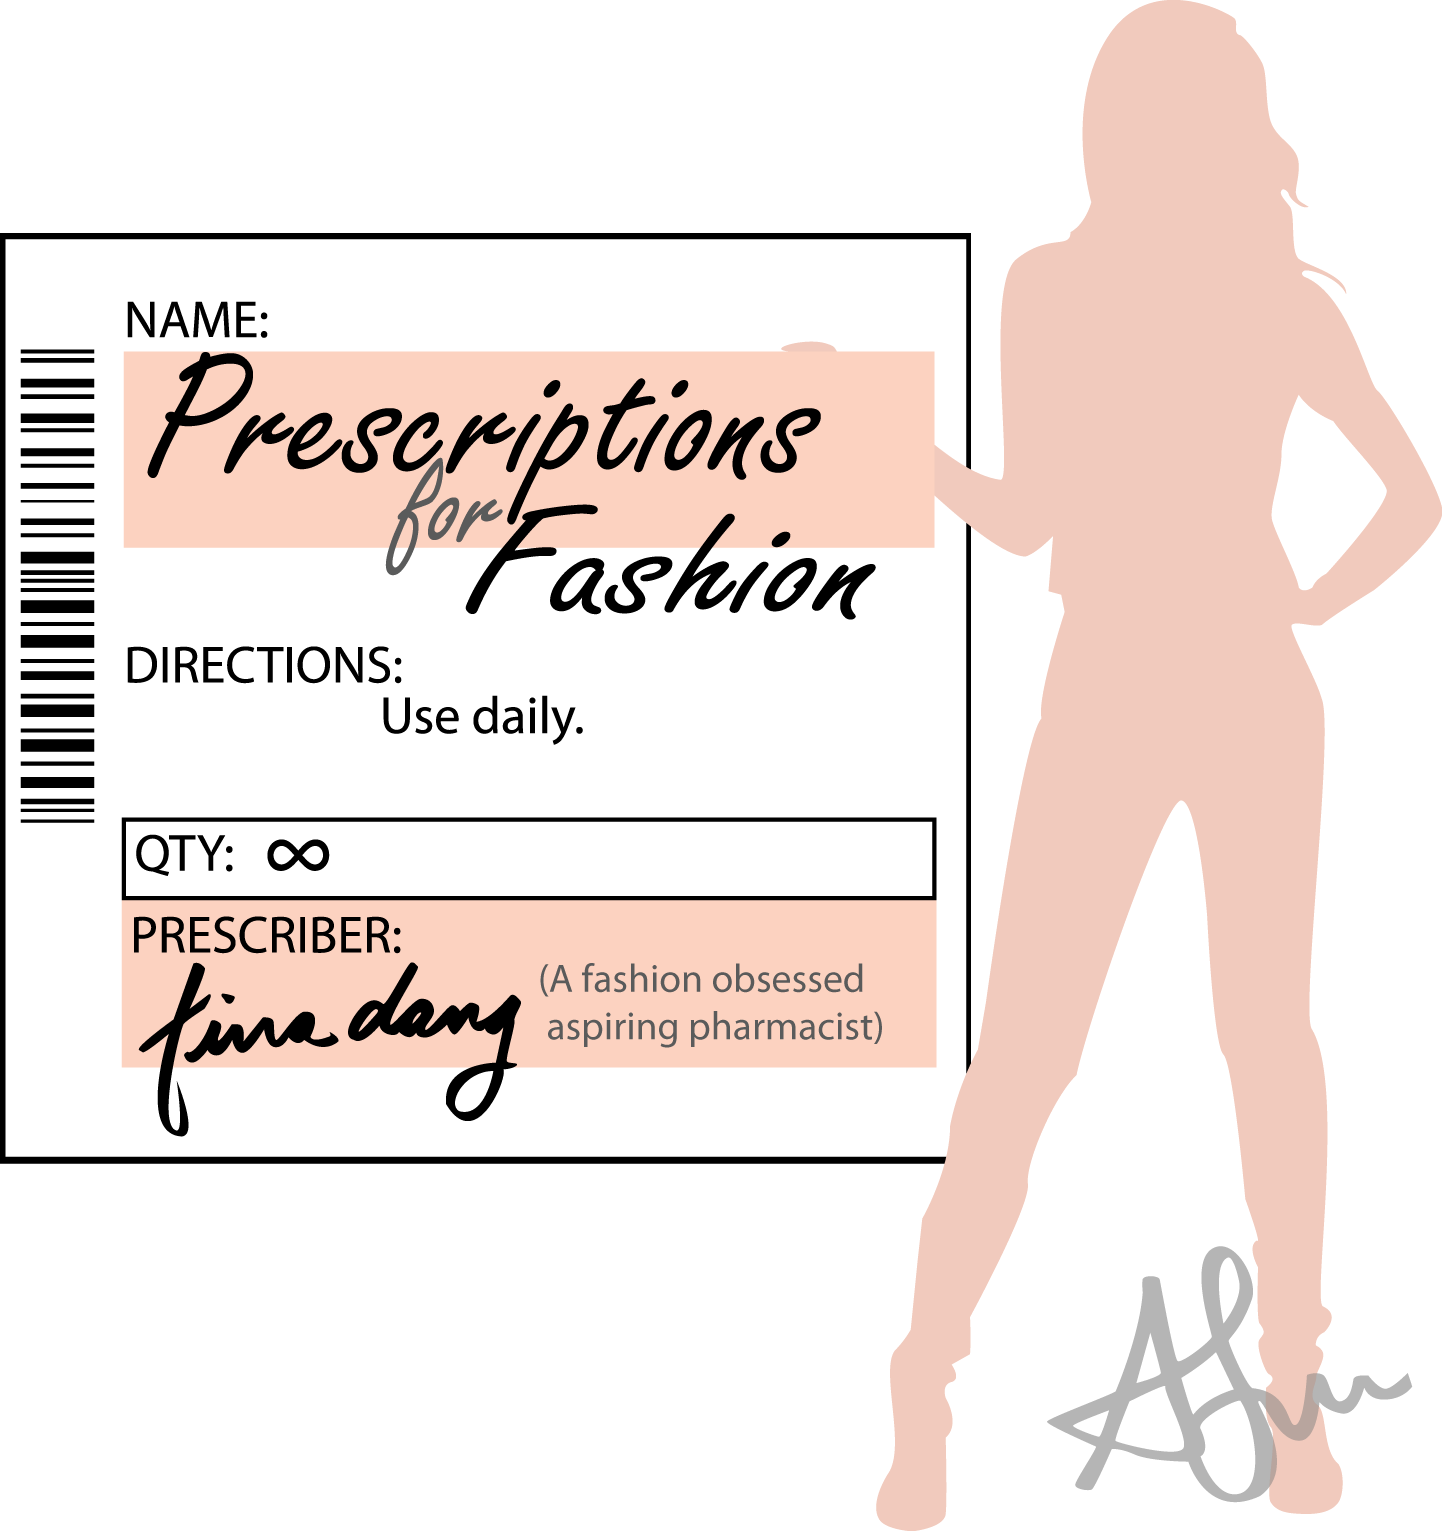 Prescriptions for Fashion